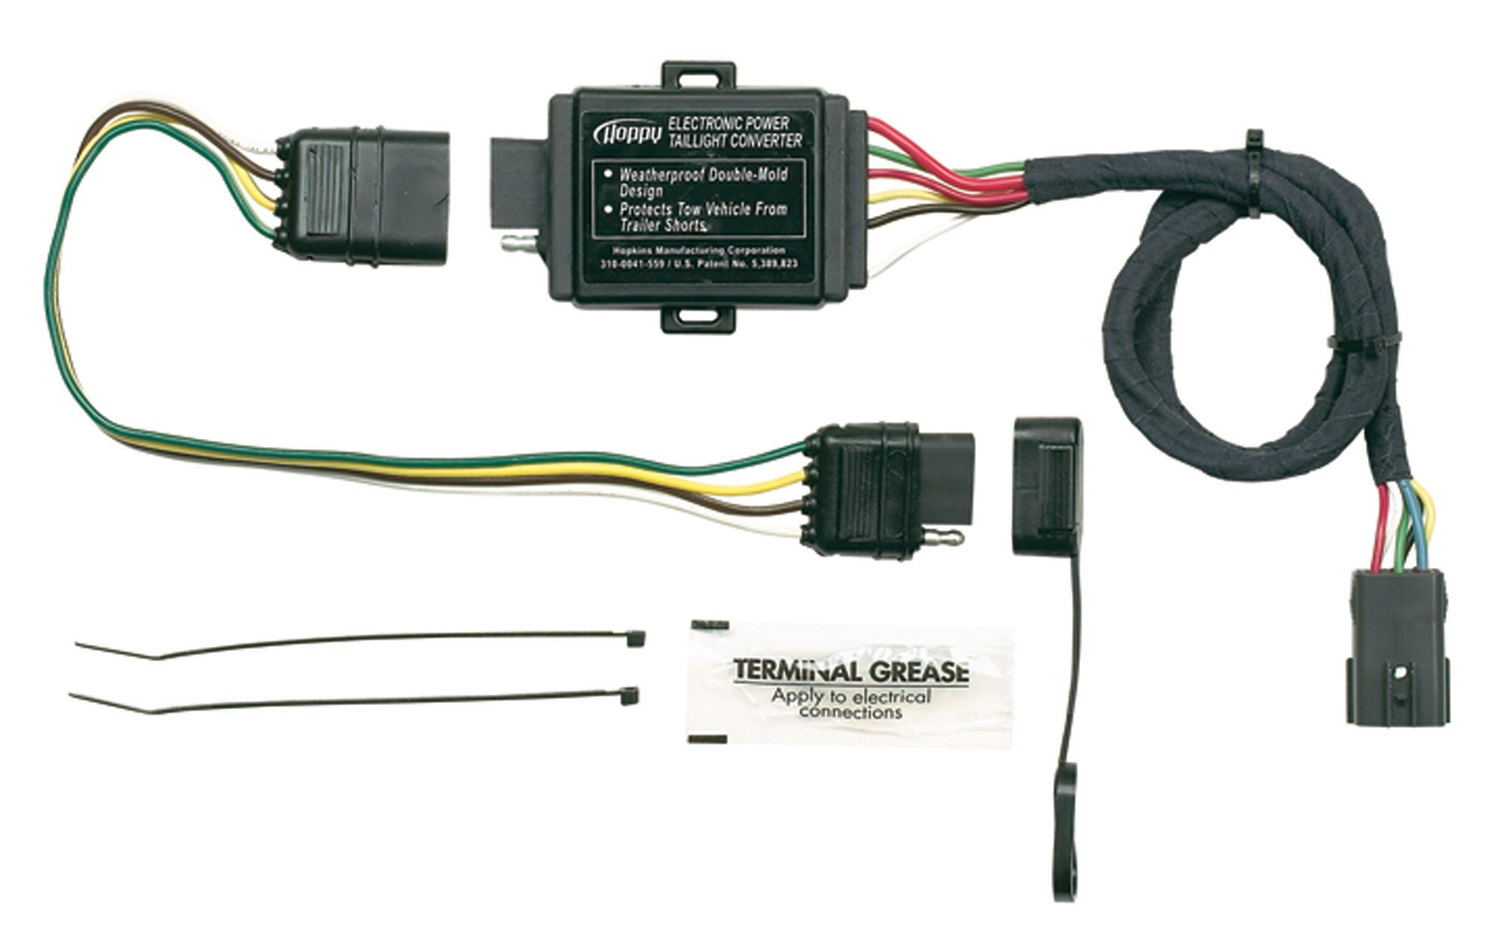 trailer plug wiring diagram uk 95 240sx headlight hopkins towing solution 11143875 wire harness